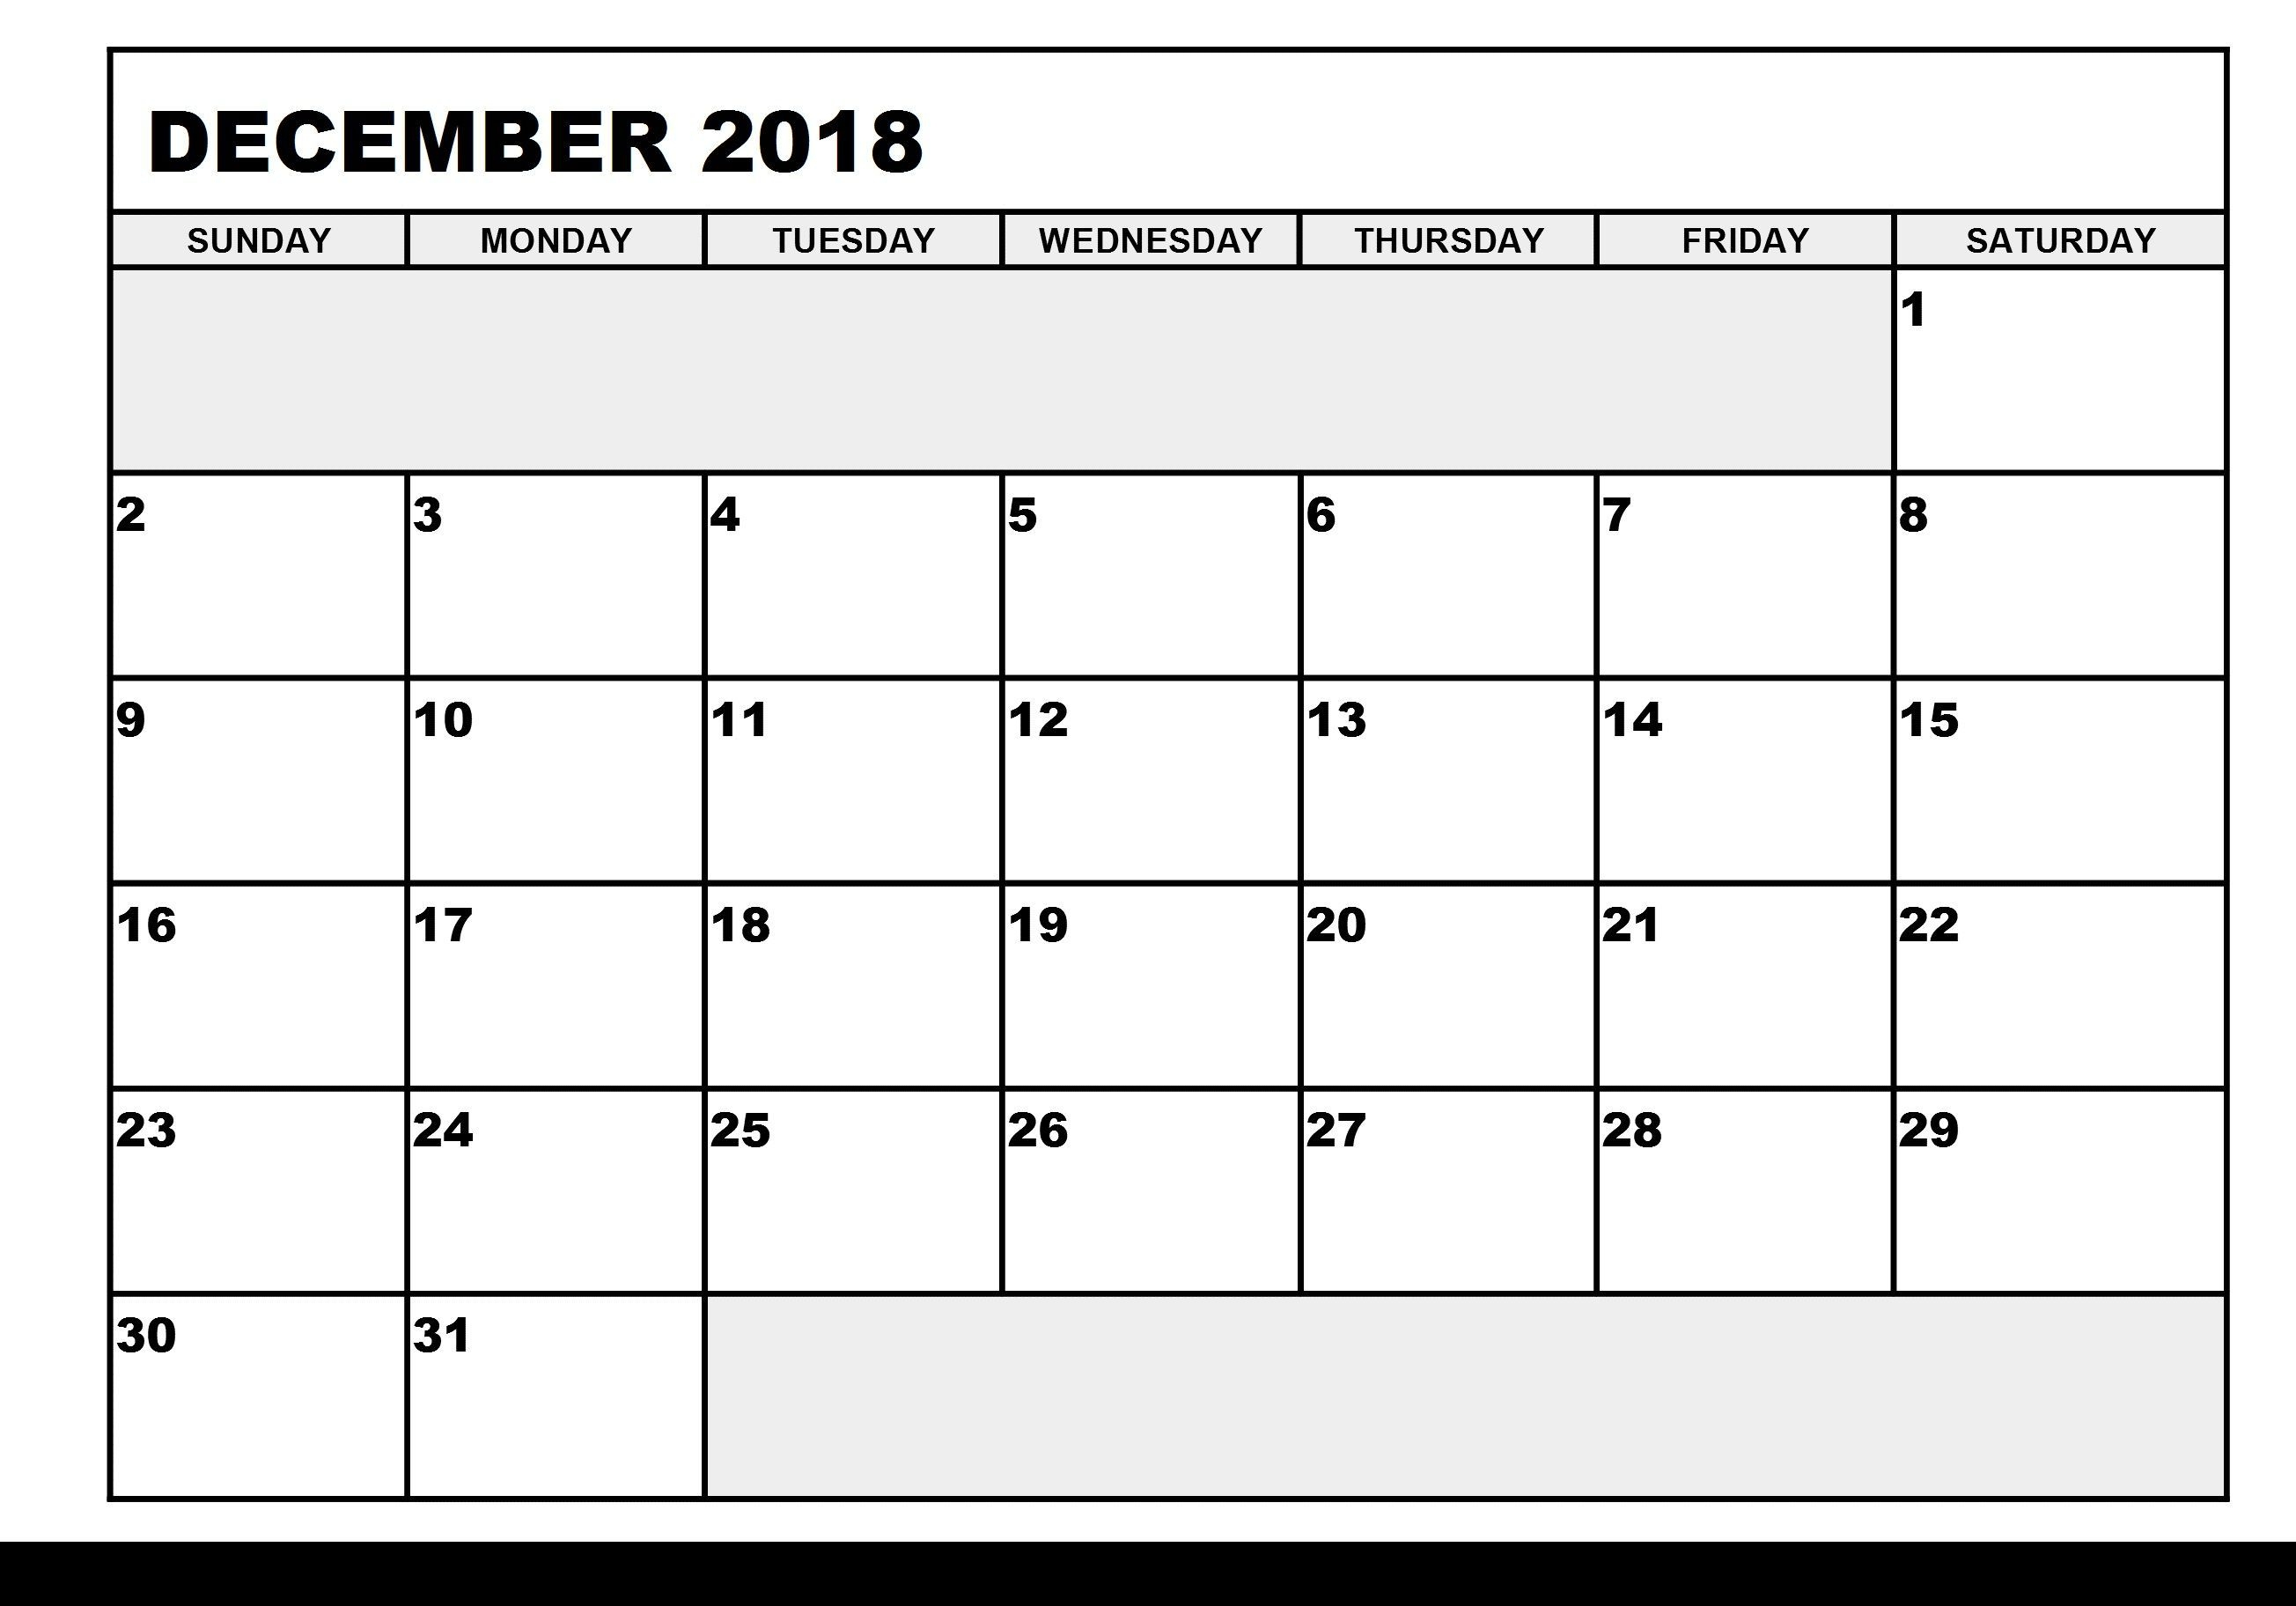 Free December 2018 Calendar Printable In Pdf | Daily